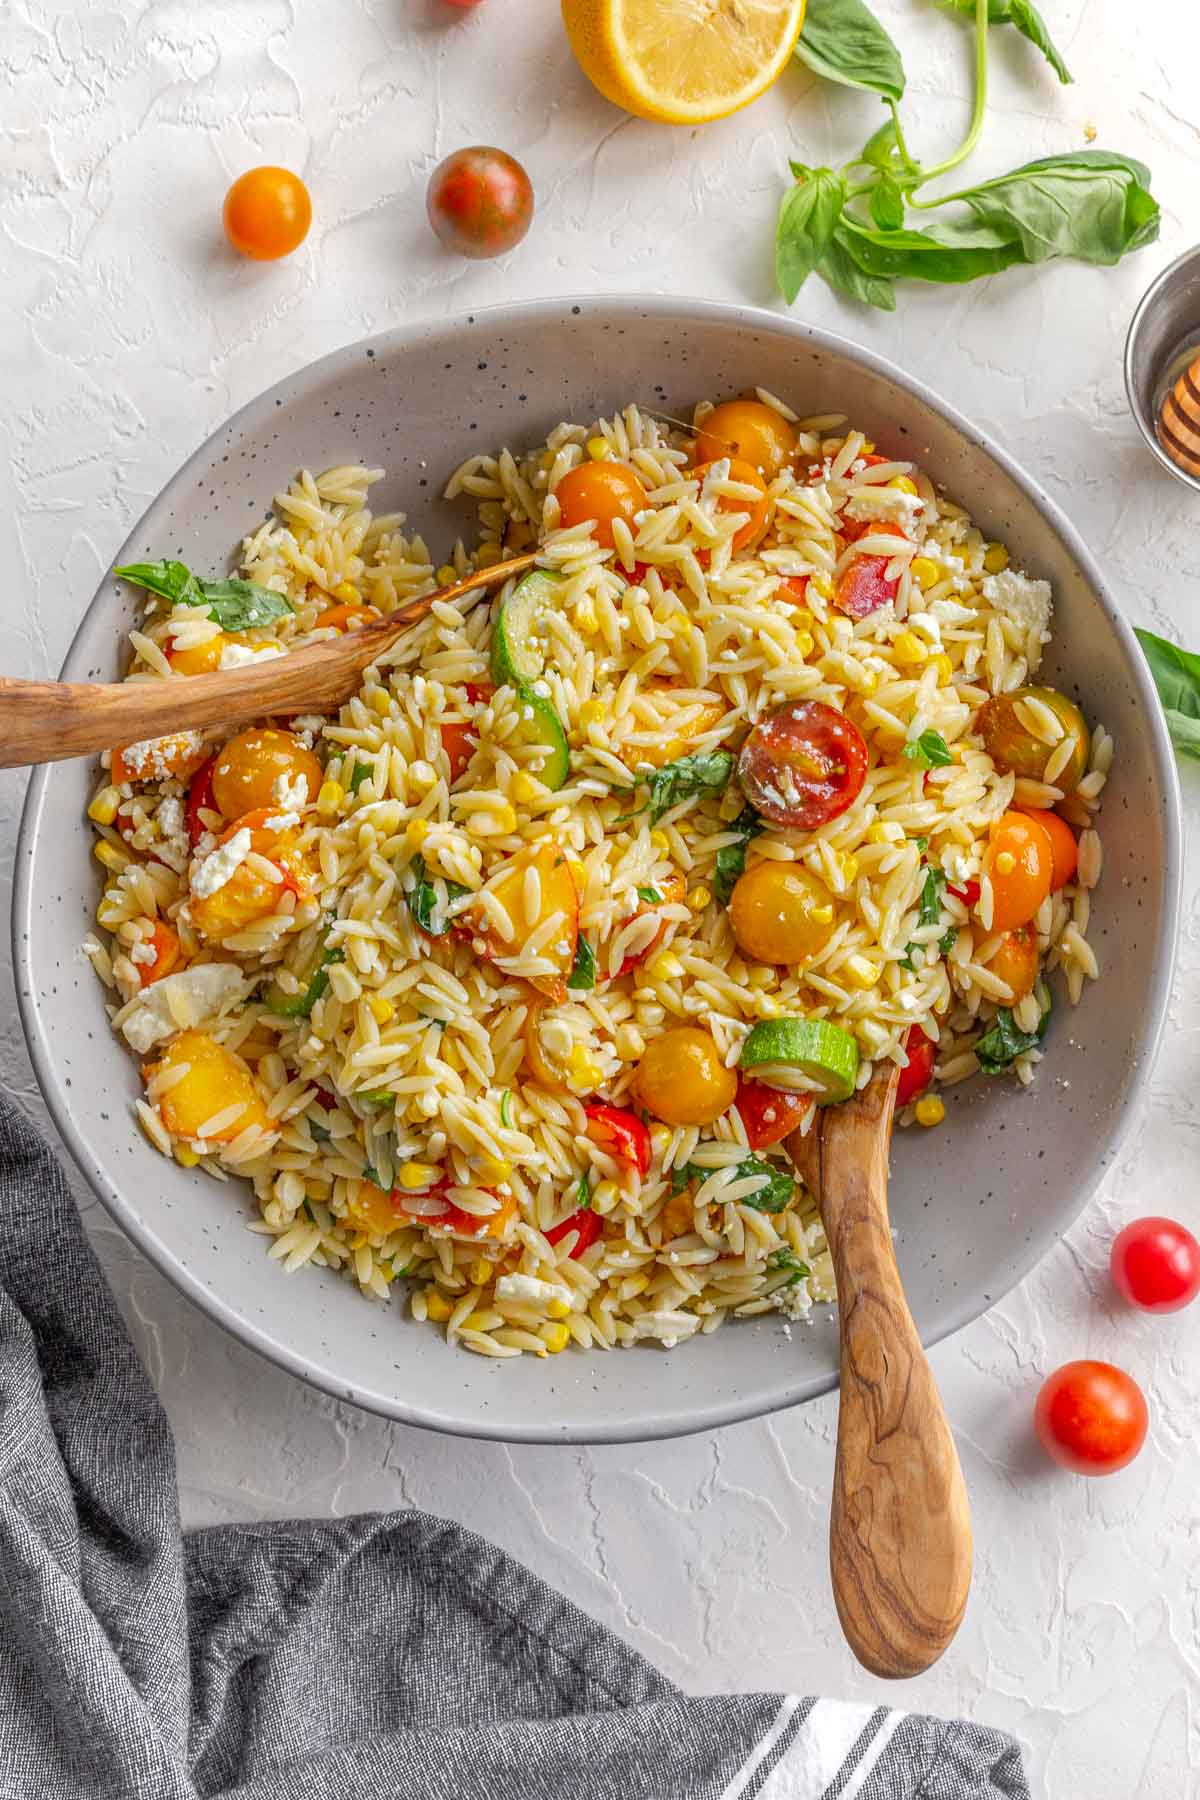 Summer orzo salad in a large grey bowl with two large wooden spoons inserted into it.